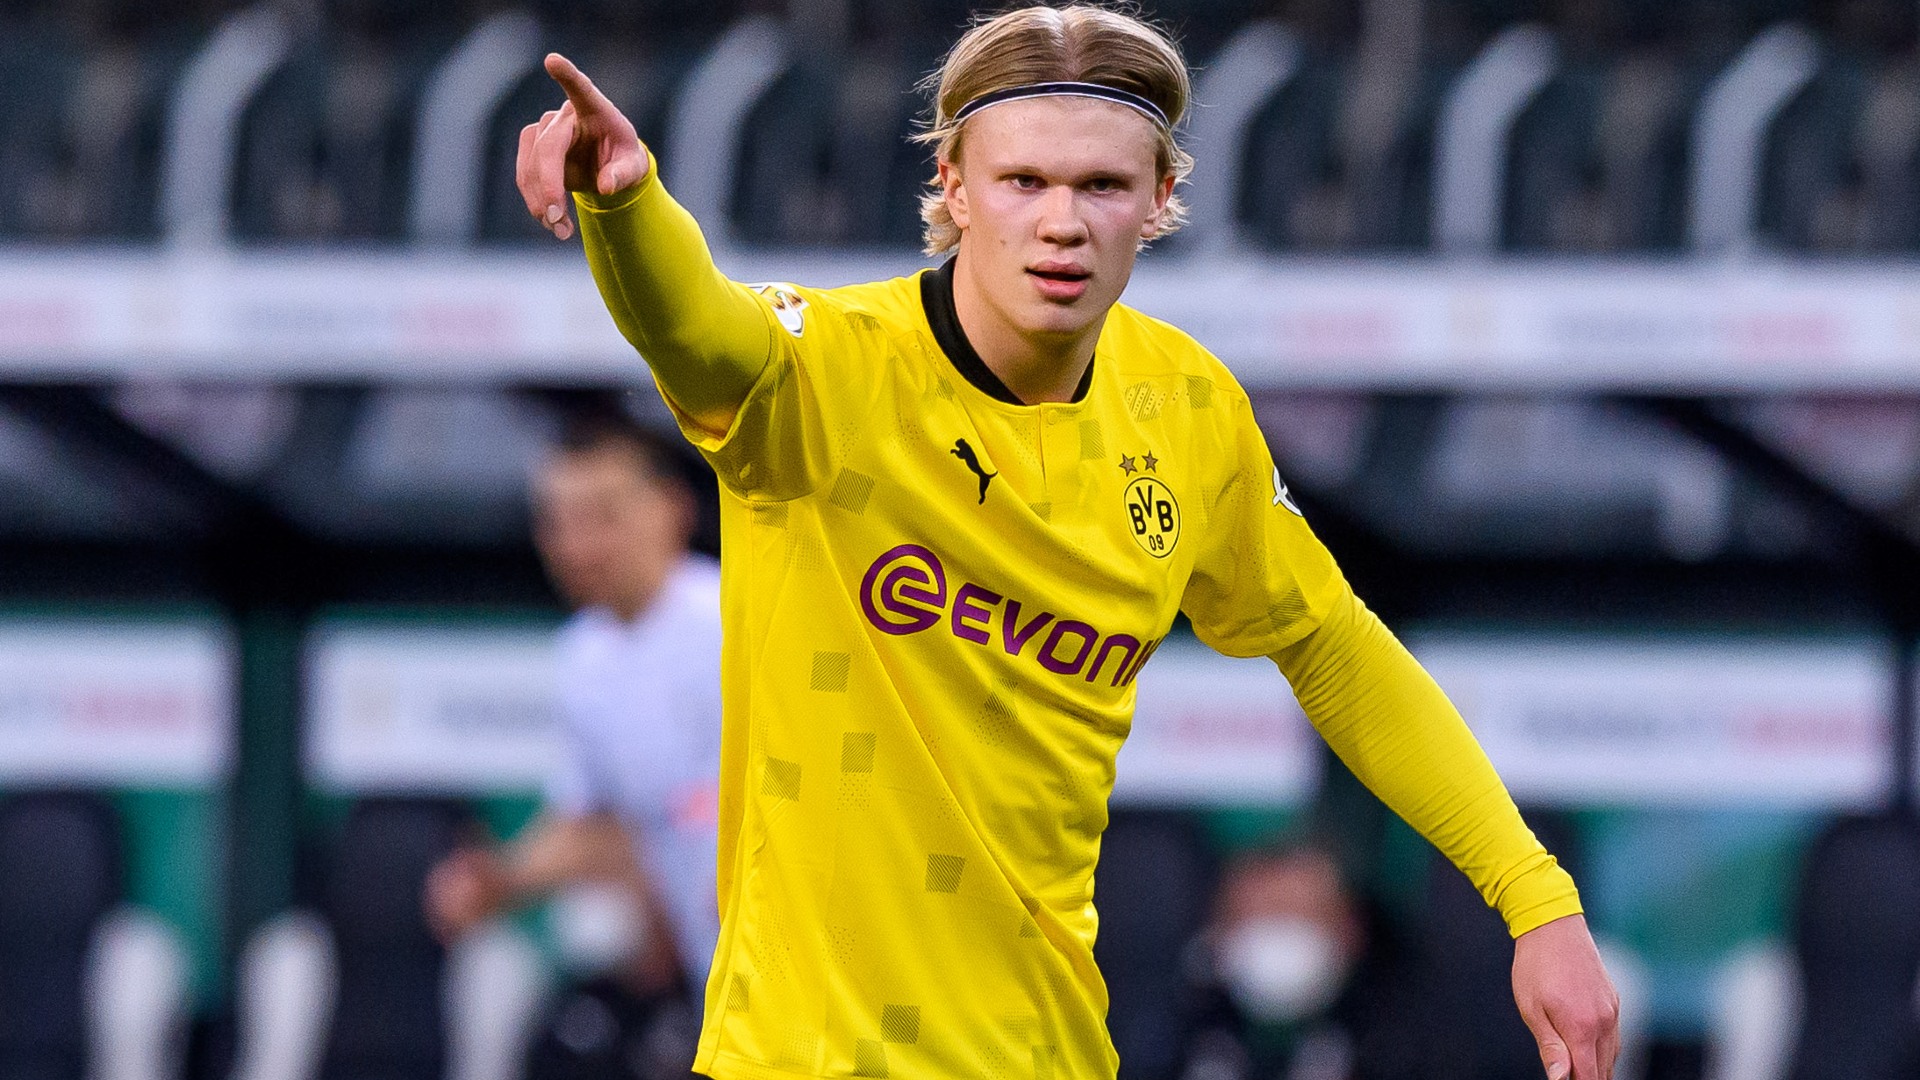 Bayern have financial strength to sign Haaland, claims president Hainer